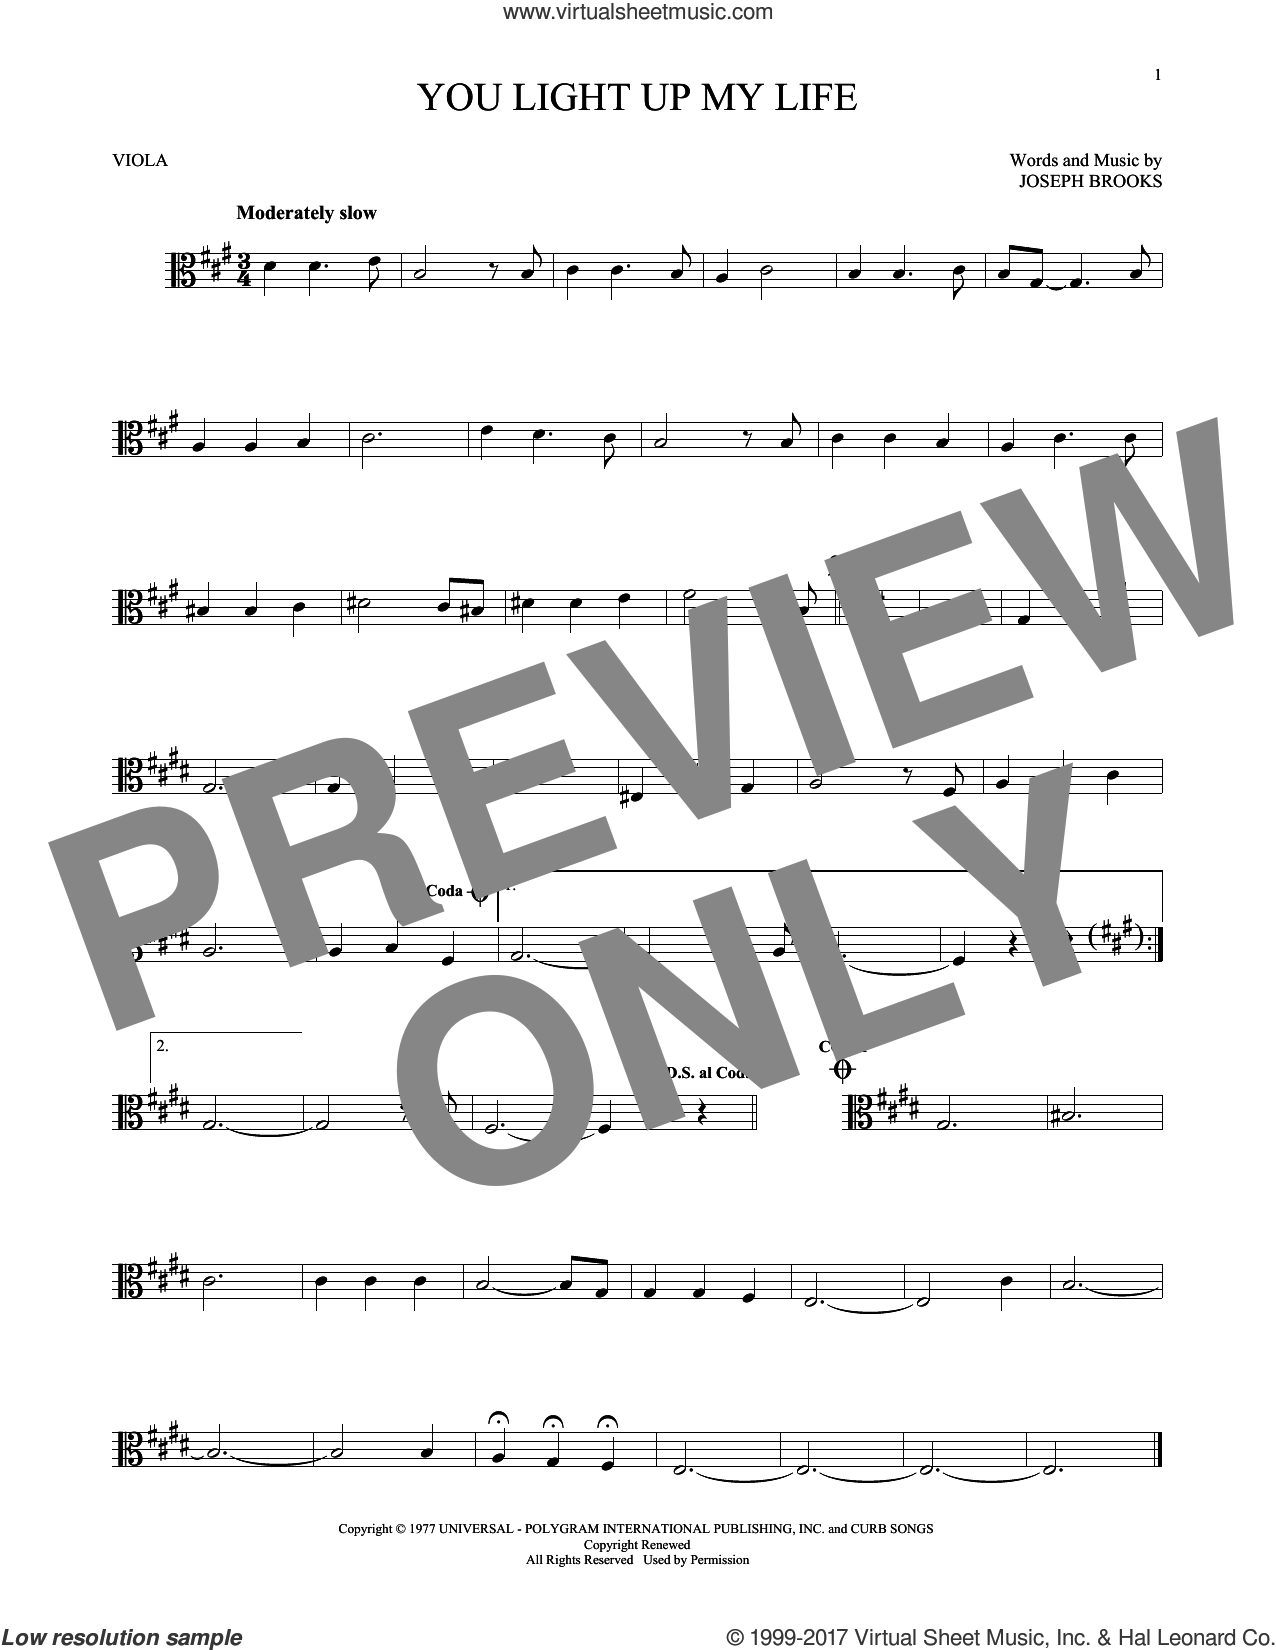 You Light Up My Life sheet music for viola solo by Debby Boone and Joseph Brooks, intermediate skill level